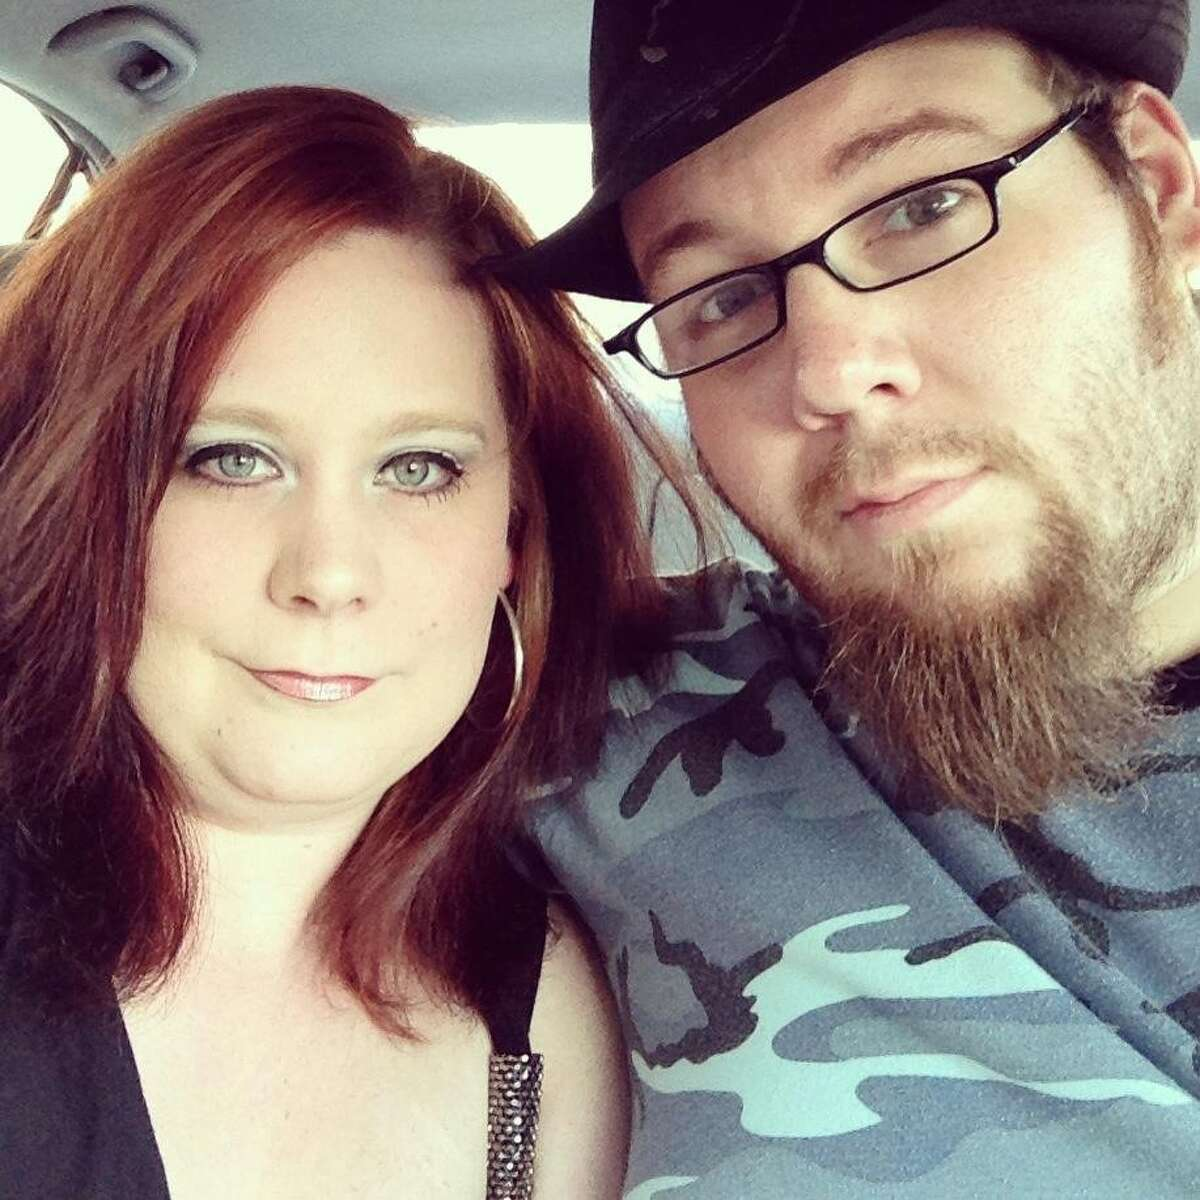 """John Sims and Lindsey Tate of Baytown have built a """"rock solid"""" relationship despite his cancer diagnosis six months after they met. They're planning their wedding on March 21, 2015, at M.D. Anderson Cancer Center. (Photo: Courtesy of Lindsey Tate)"""